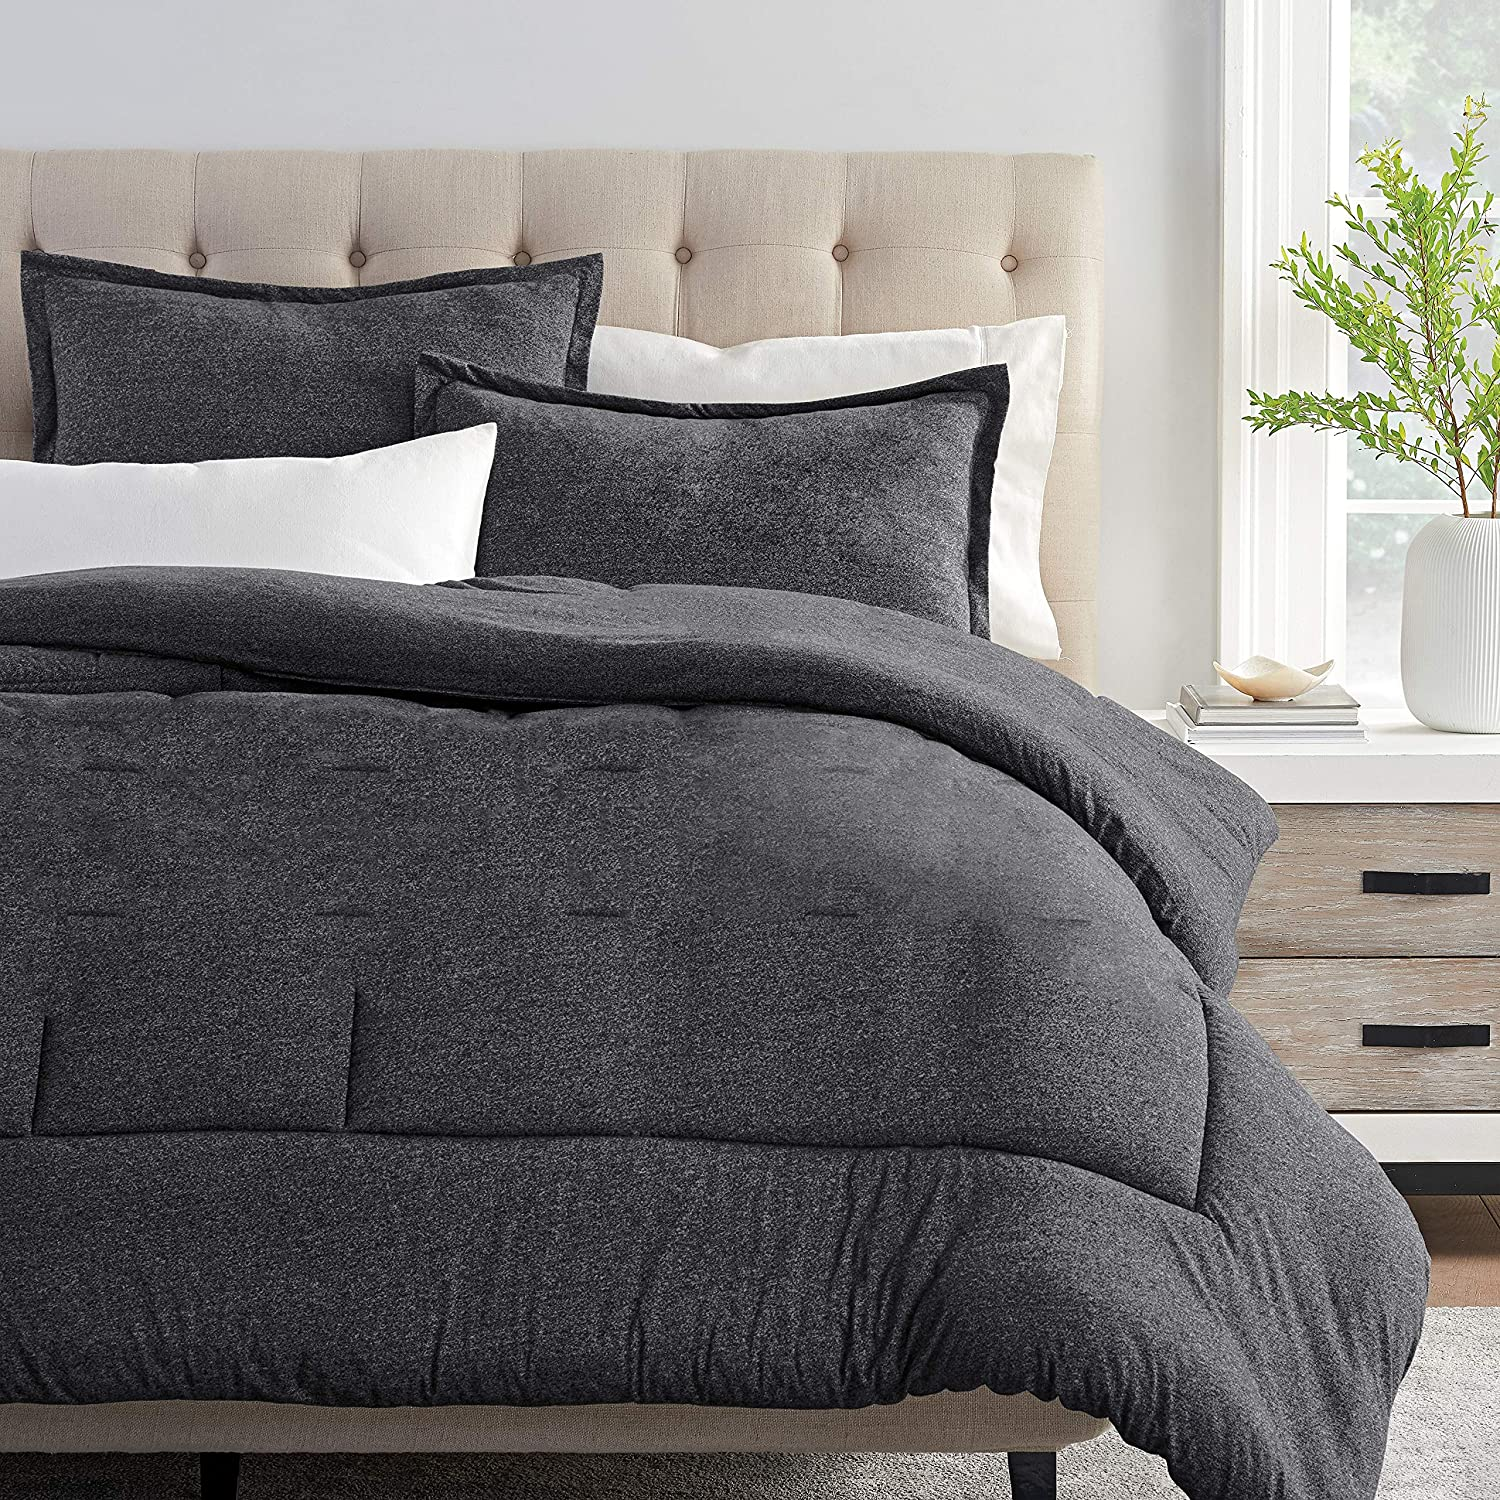 Columbia Cooling Soft Comfort 3 Piece Bedding Set | Value Bundle Includes 1 Comforter & 2 Standard Pillow Shams | Temperature Regulating | Omni-Wick, Moisture Wicking Technology | Full/Queen - Gray